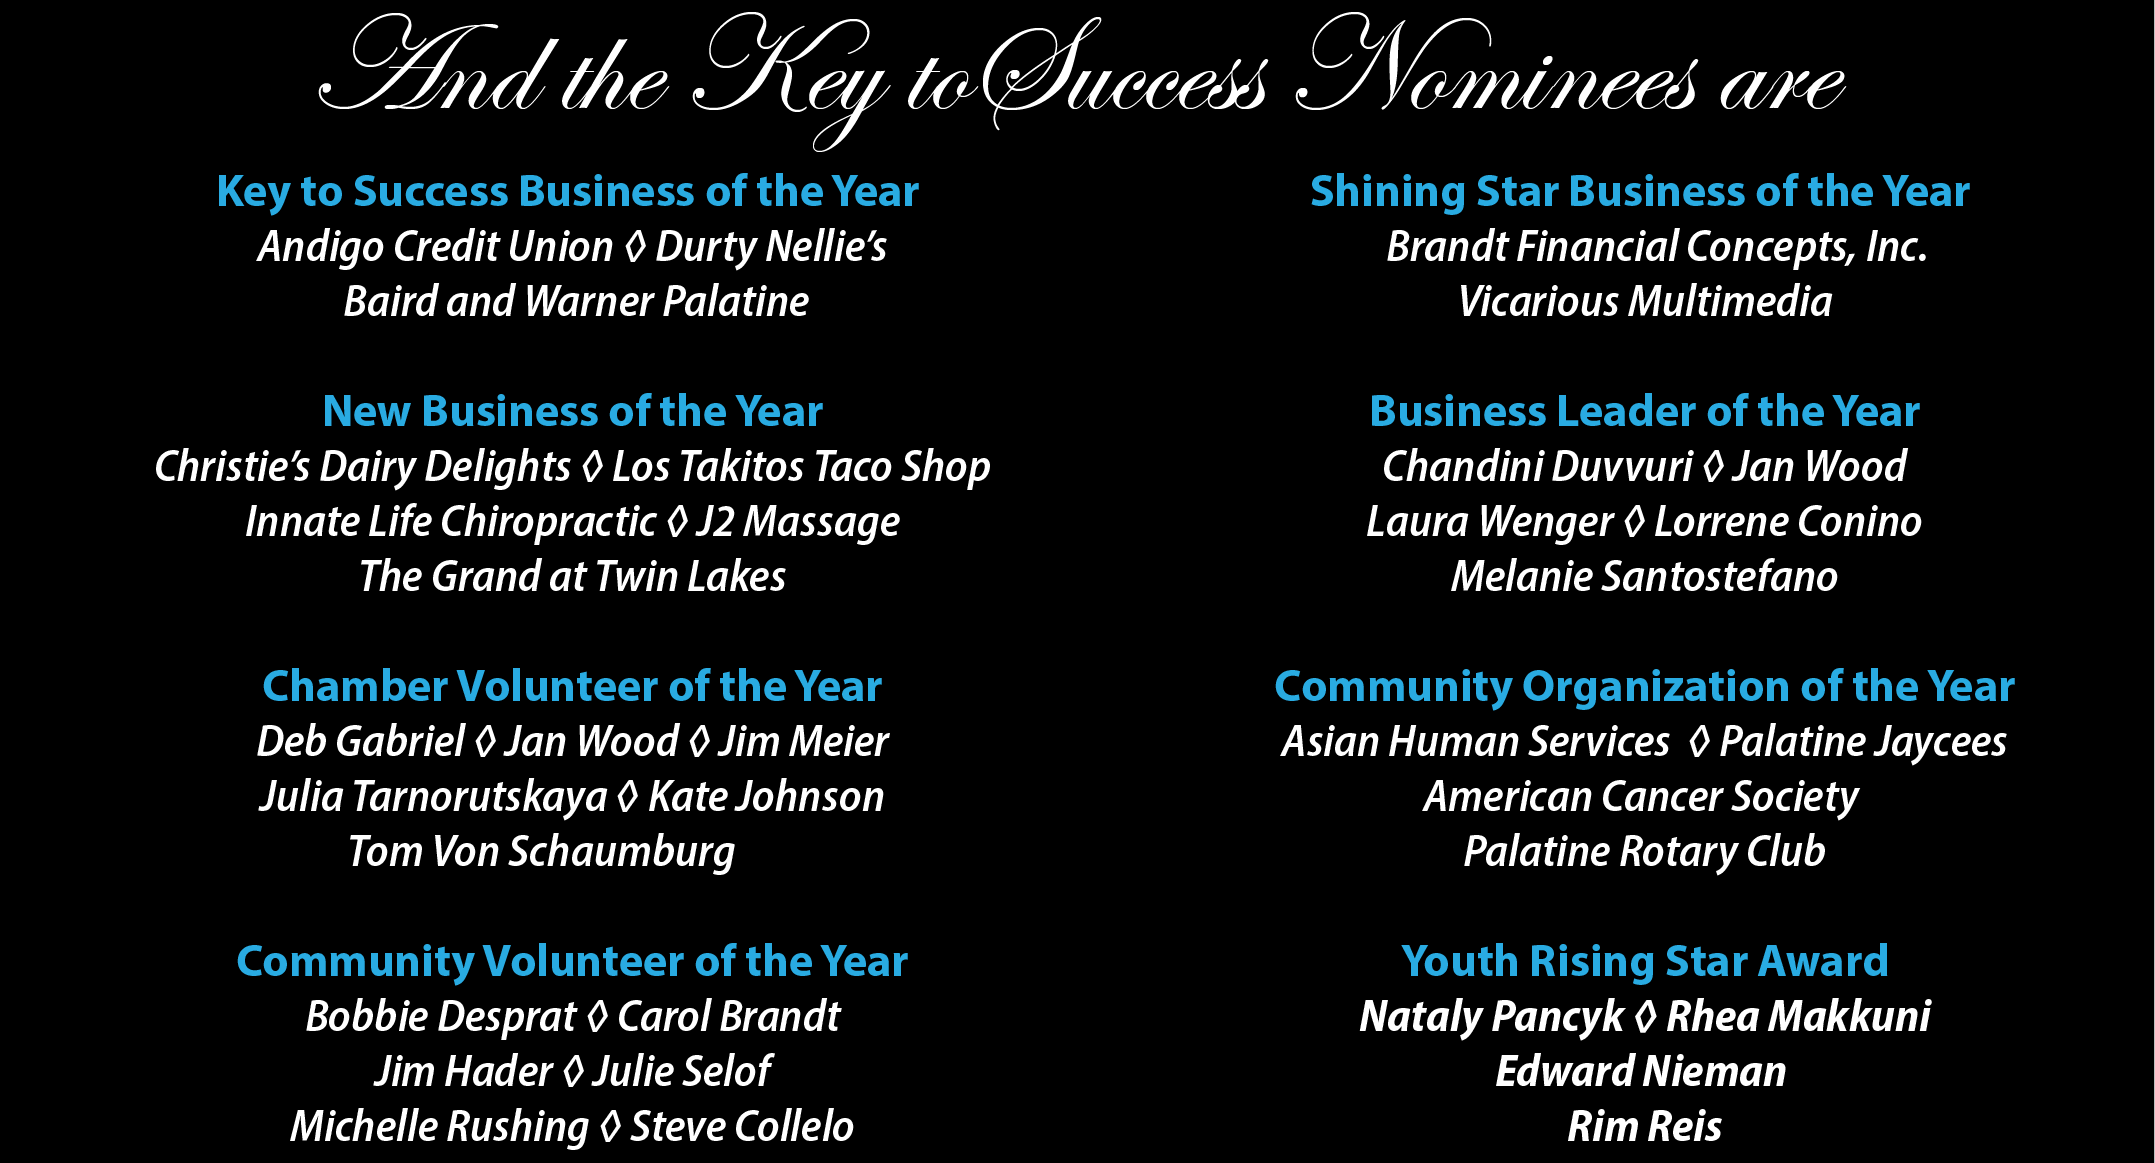 KTS-Nominees-are-01.png